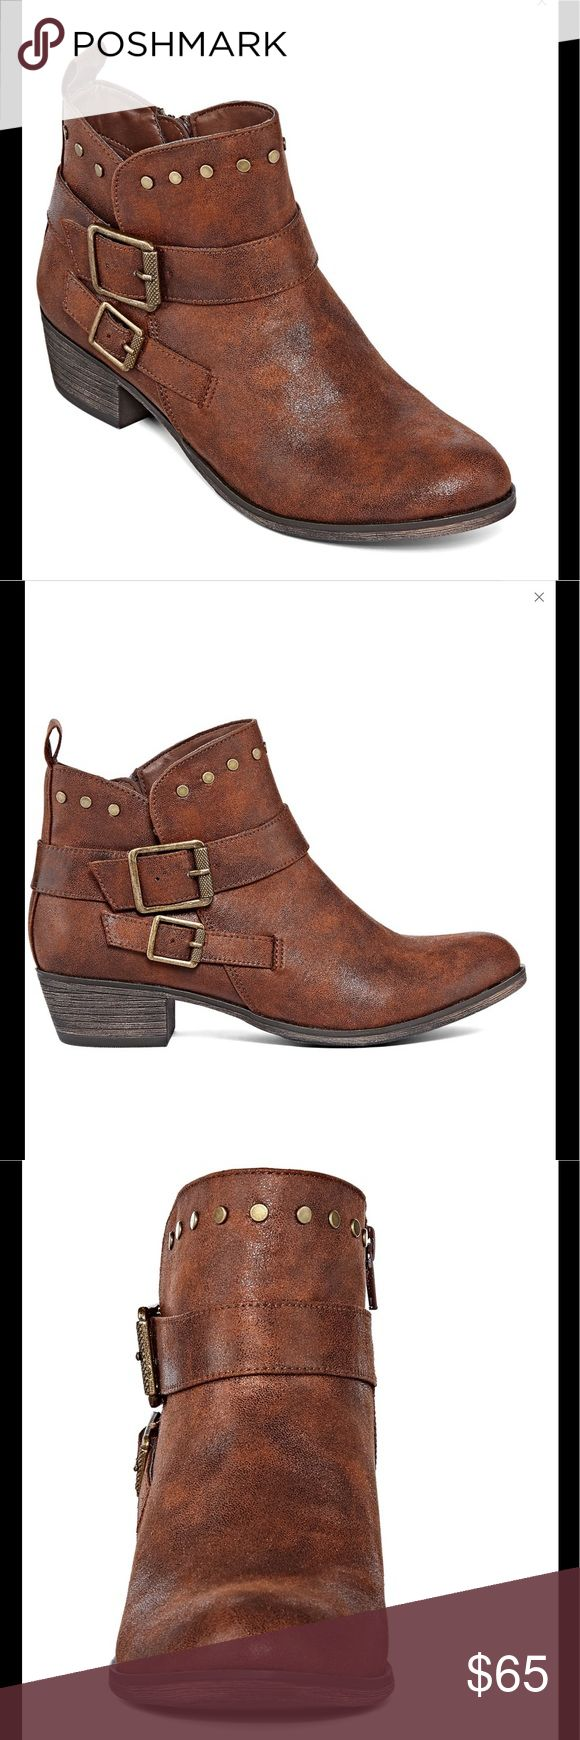 "Archer Beaded Bootie Boots Cognac A sleek, simple design mixes with unique stud details for versatile booties that will be your go-to choice all season long. polyurethane upper, 1½"" heel, rubber soles. Medium width. REVIEWS - 4.6 out of 5 from 174 sales. 071720171359801 Shoes Ankle Boots & Booties"